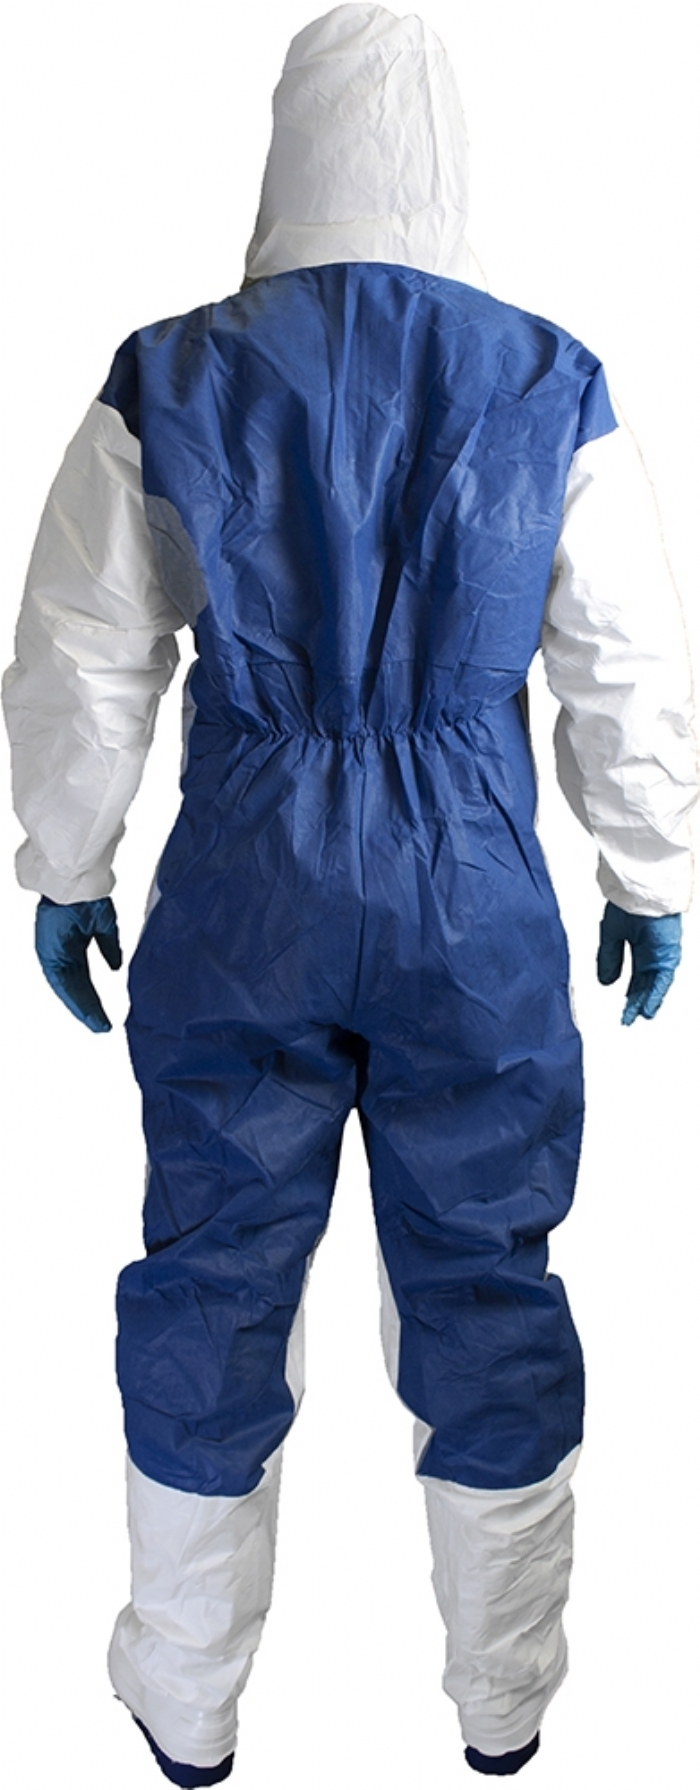 CHEMCOOL Disposable Coverall